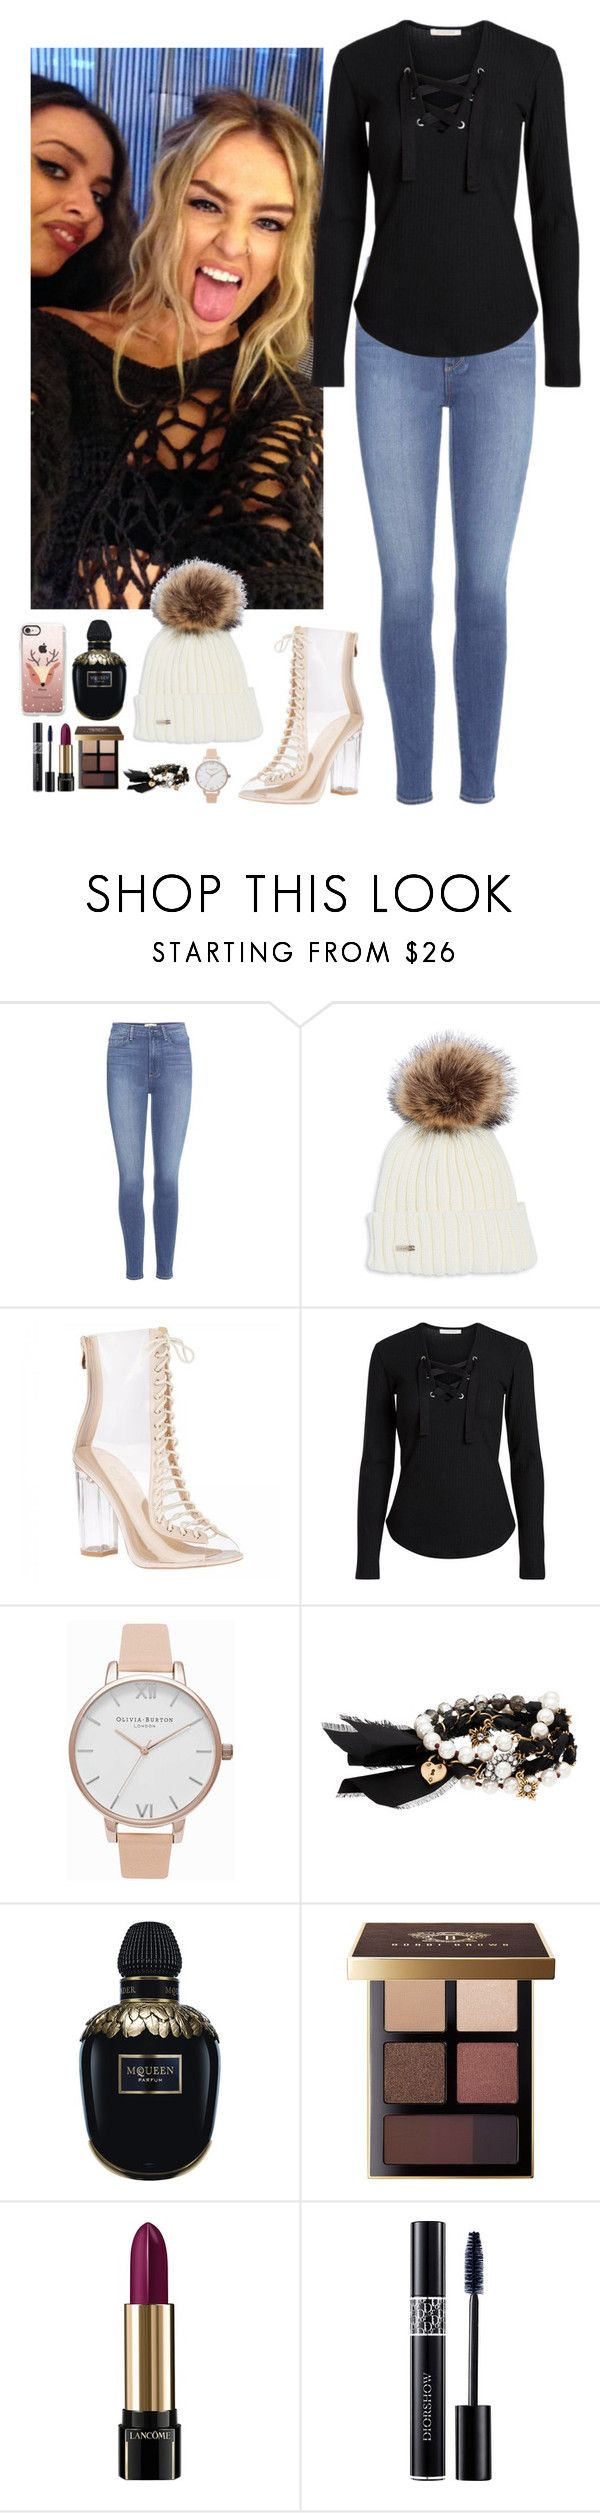 """Perrie Edwards, LM #42"" by ambere3love34 ❤ liked on Polyvore featuring Paige Denim, Olivia Burton, Chloe + Isabel, Alexander McQueen, Bobbi Brown Cosmetics, Lancôme, Christian Dior and Casetify"